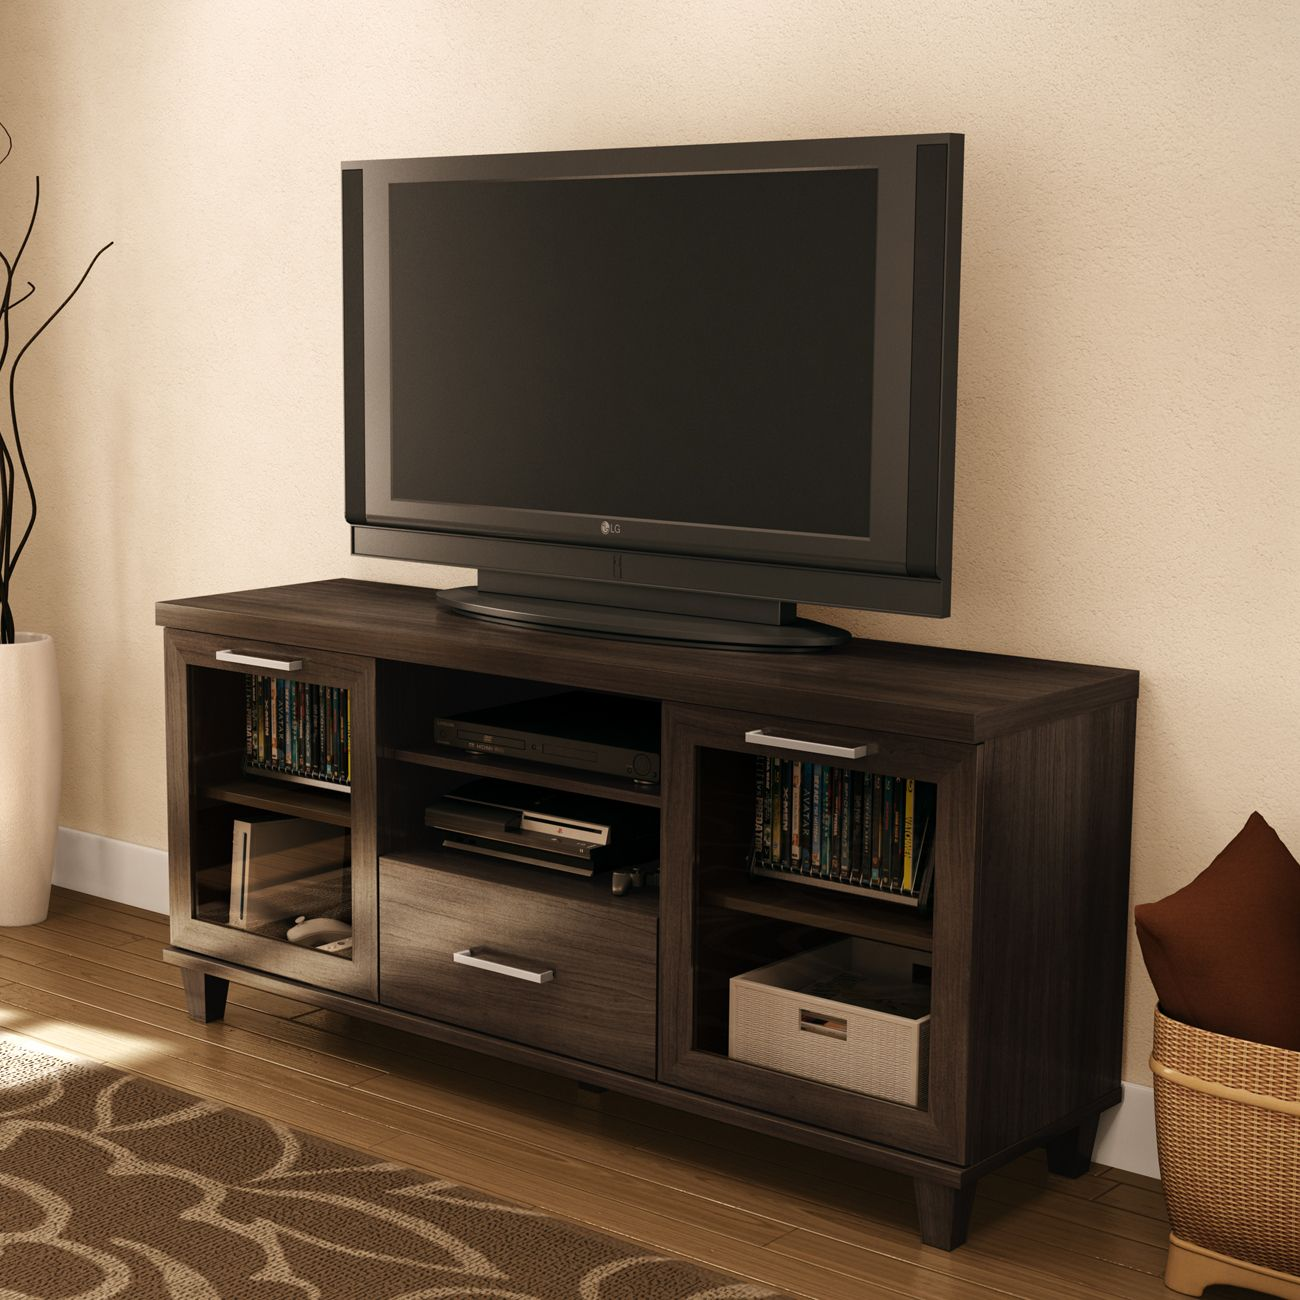 South Shore Furniture Adrian Tv Stand Lowe S Canada 212 80